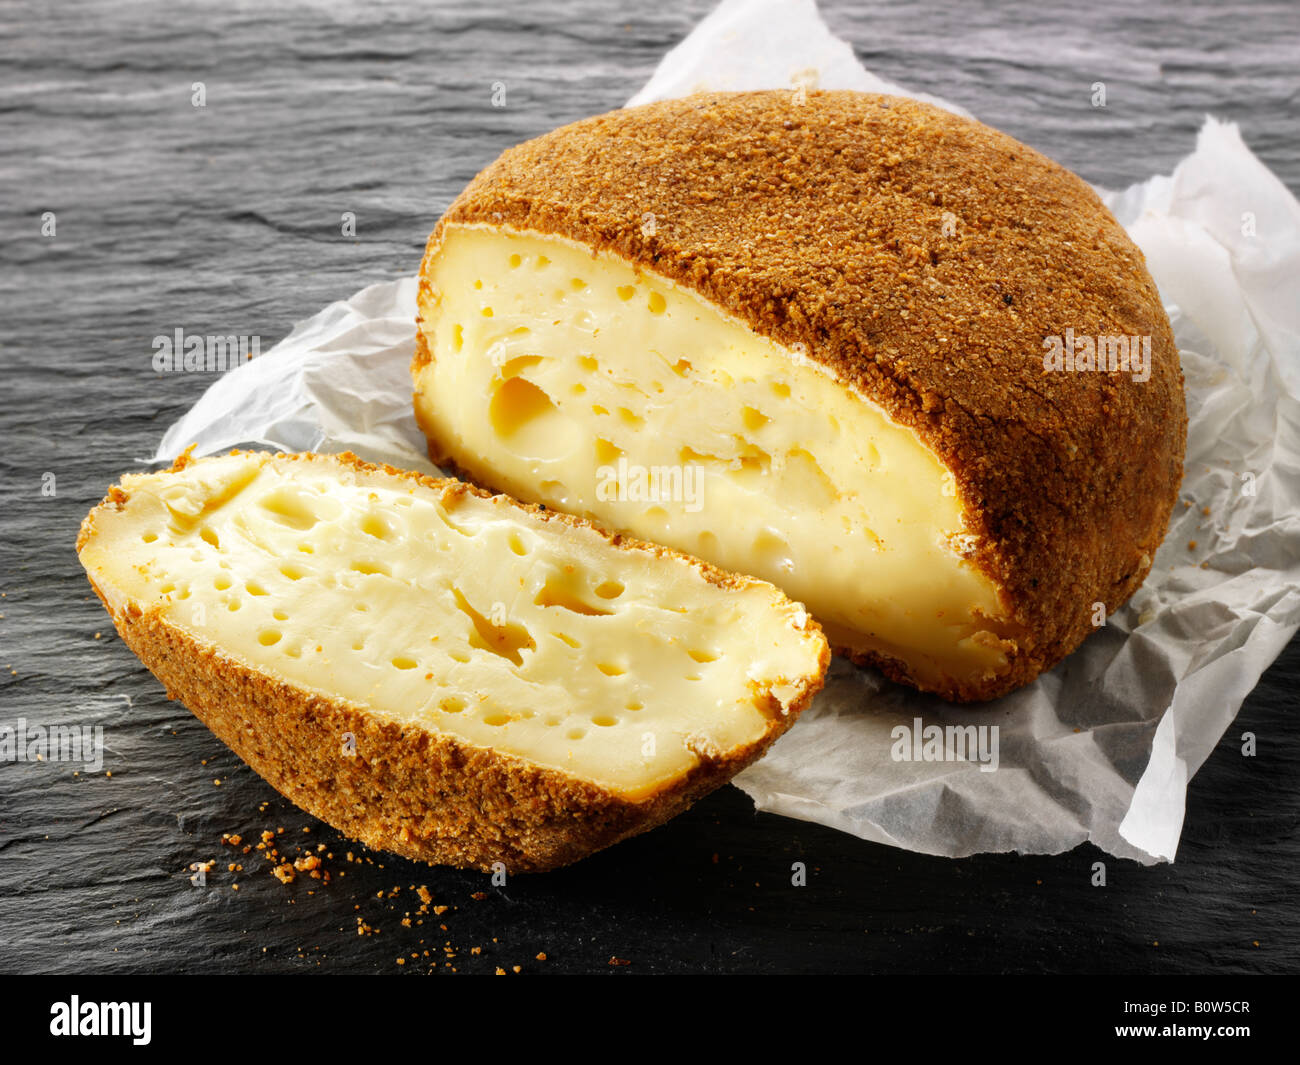 La Pucelle Regional French cows milk cheese from Normandy with apple liqueur from Fromagerie Maitre Pennec Stock Photo